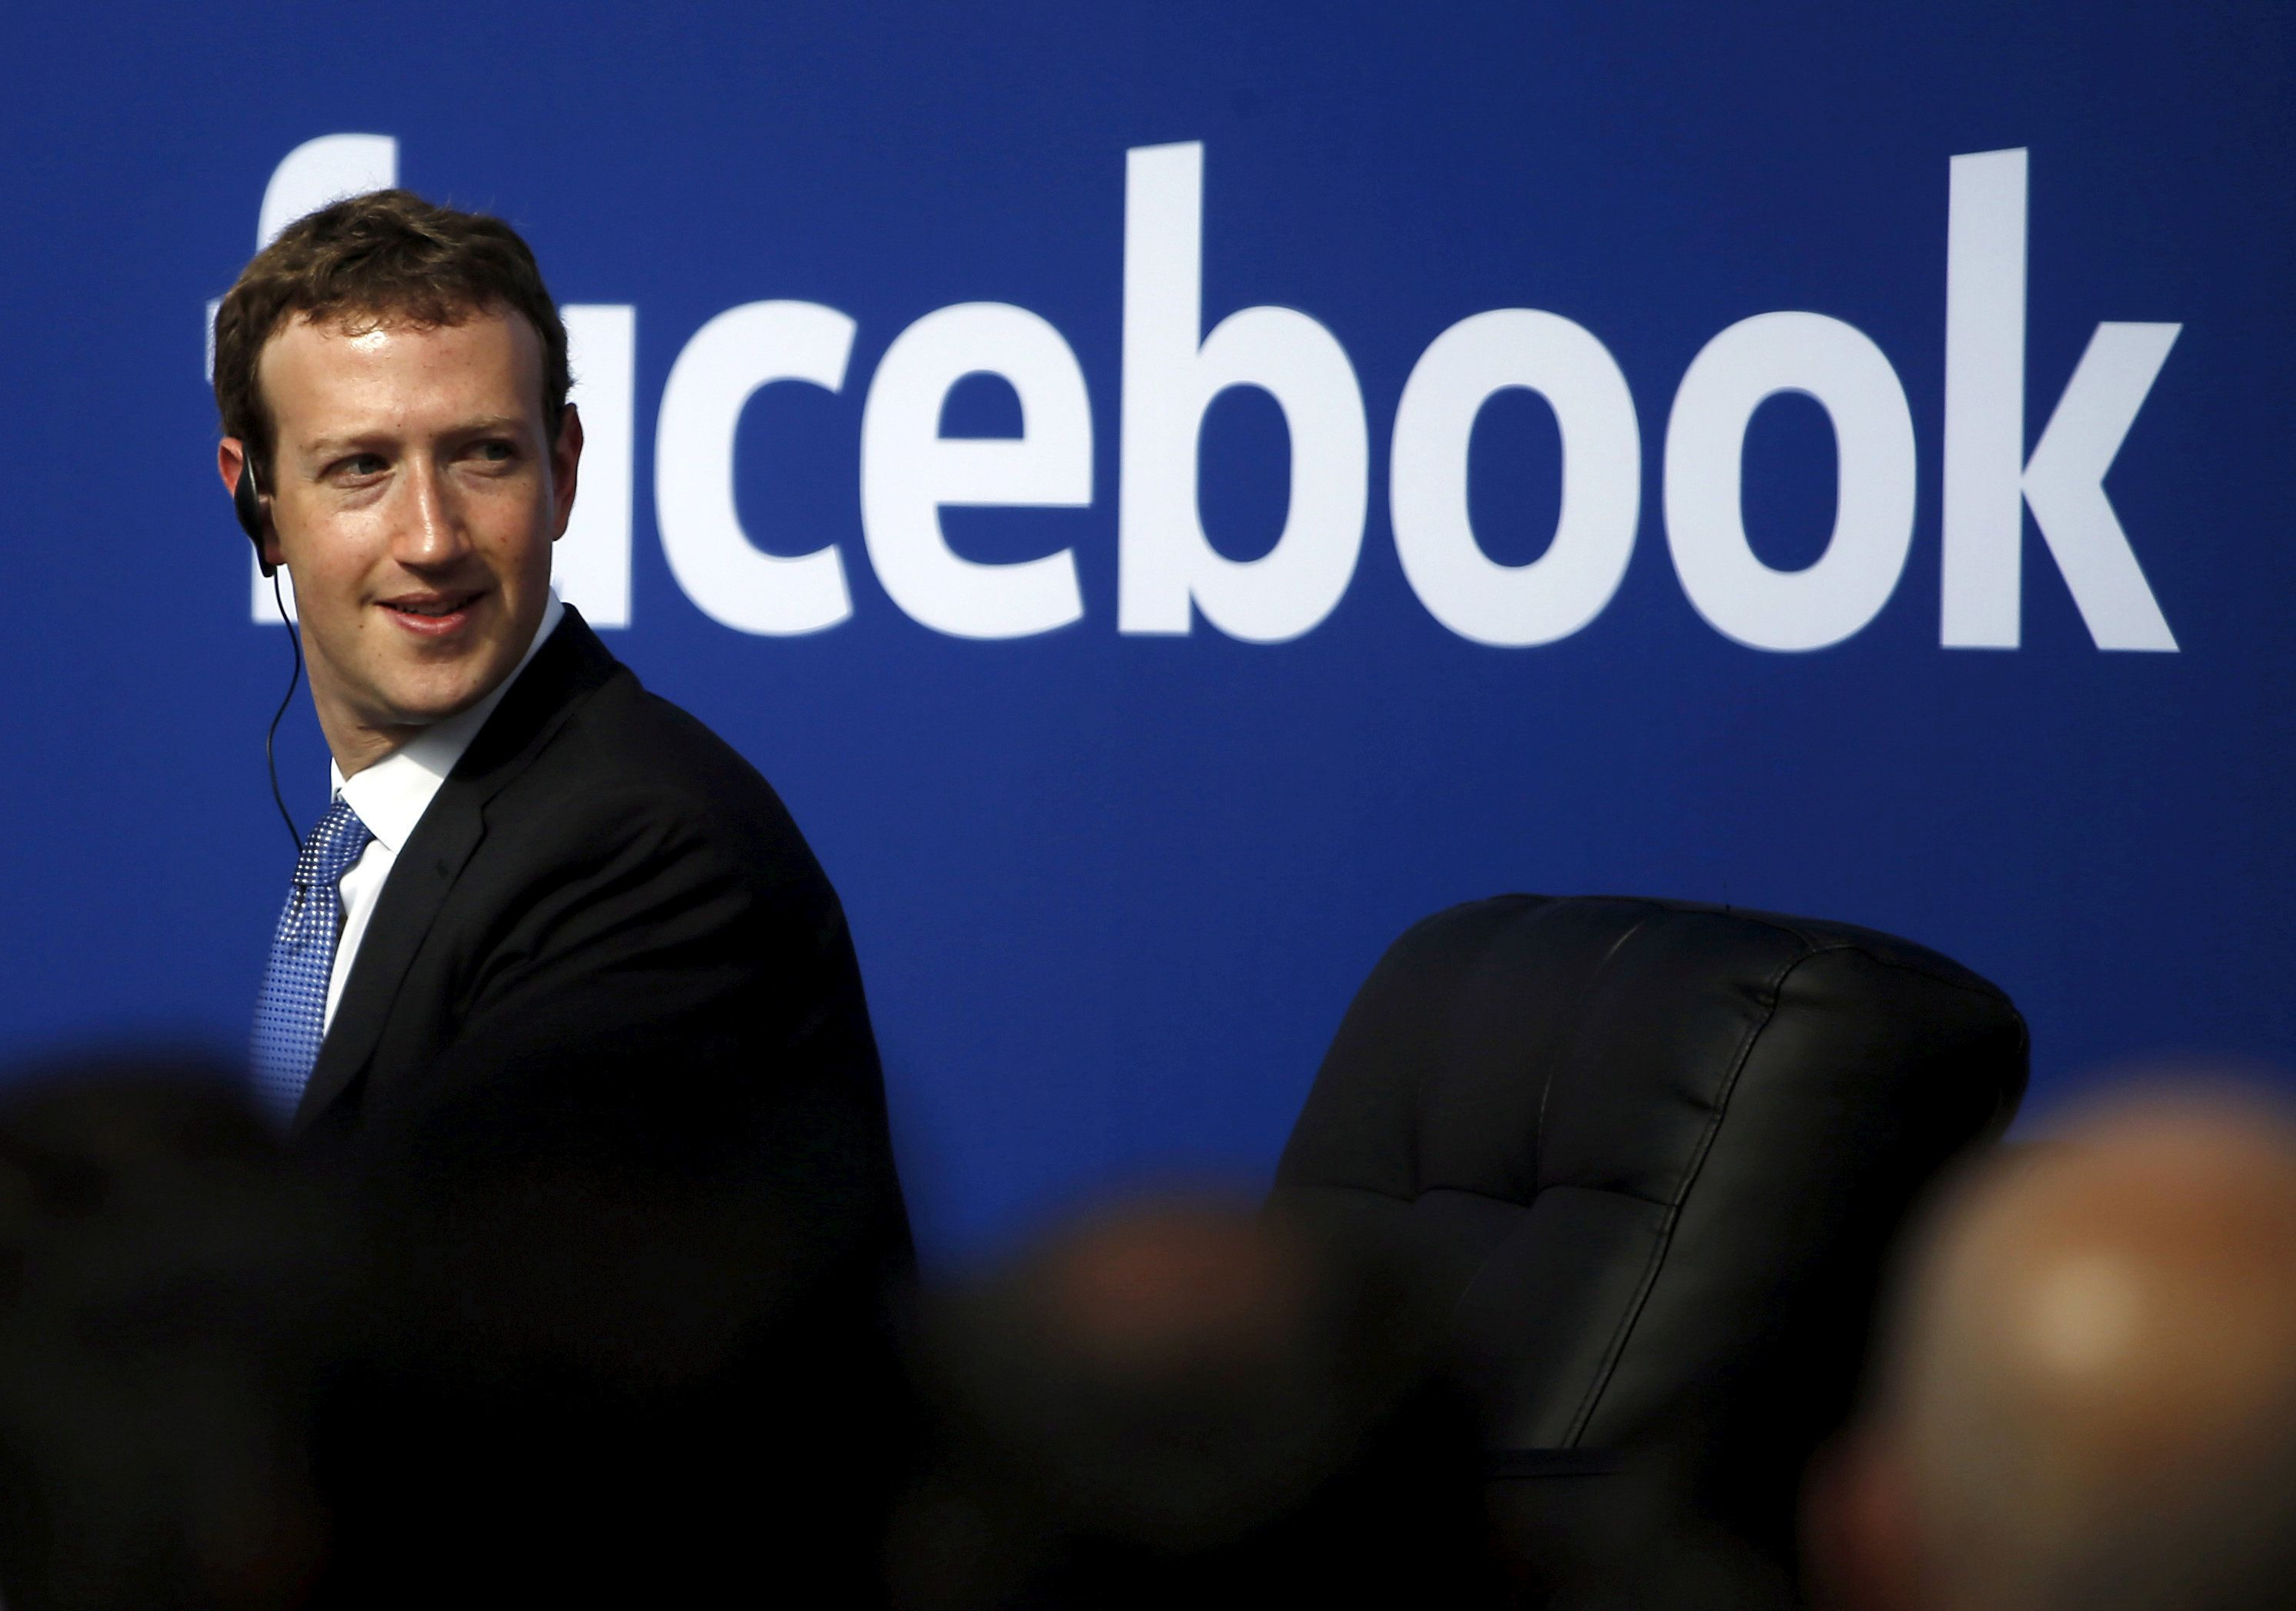 Germany Orders Crackdown On Facebook's Data Collection